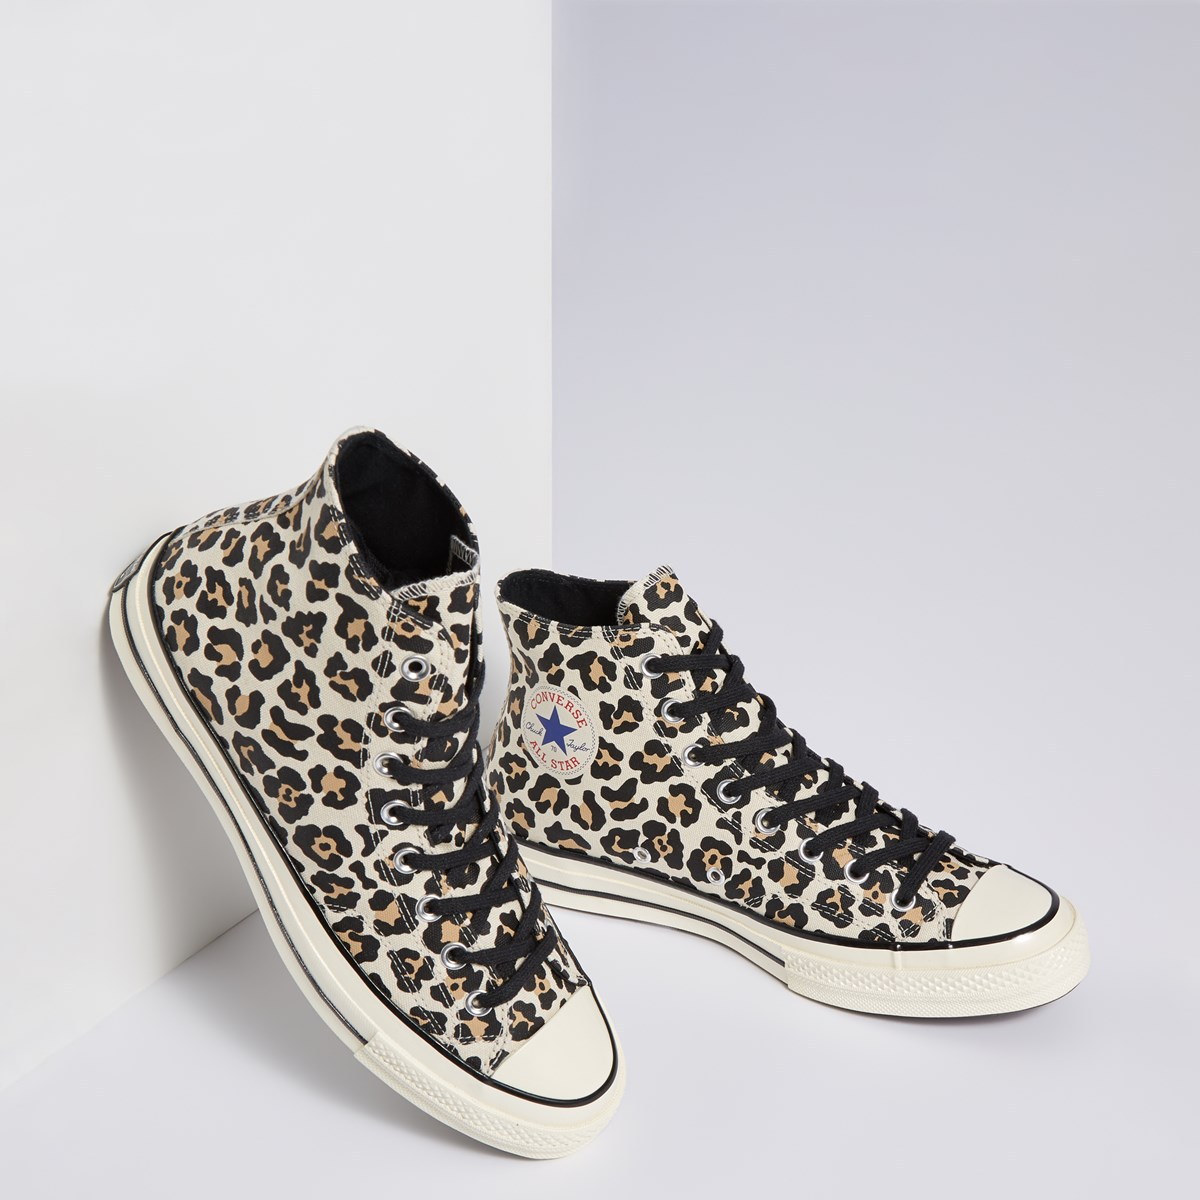 Women's Chuck 70 Vintage Hi Sneakers in Cheetah Print